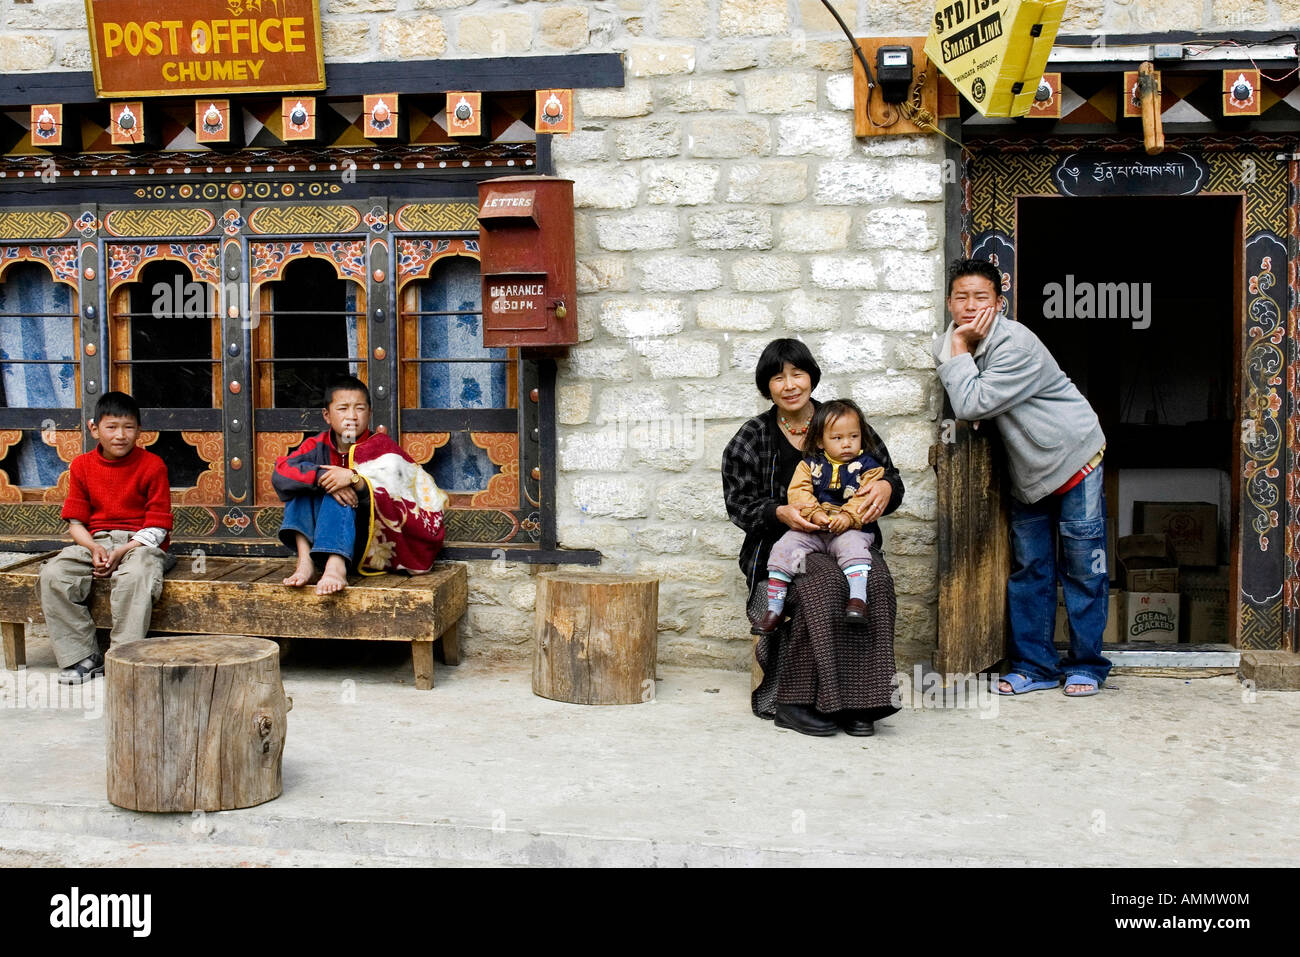 Family in front of Chumey's Post Office in the Bumthang province, Bhutan - Stock Image